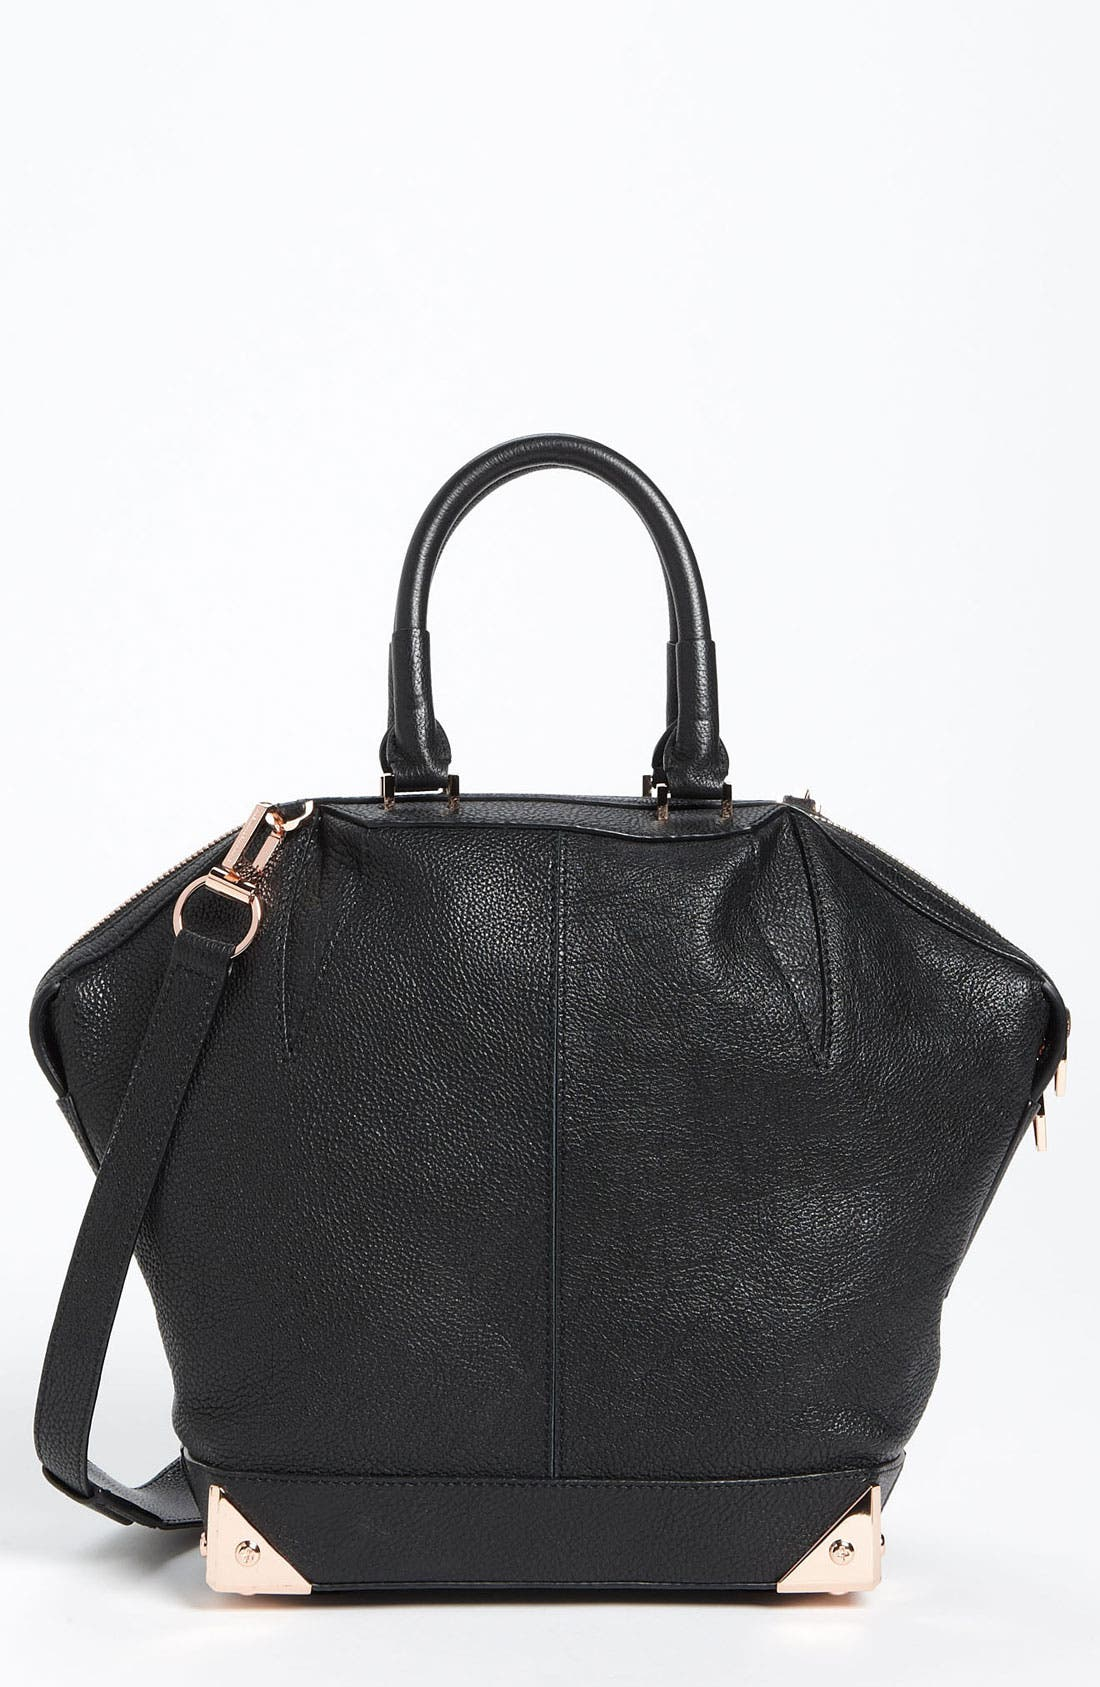 Alternate Image 1 Selected - Alexander Wang 'Emile - Small' Leather Tote